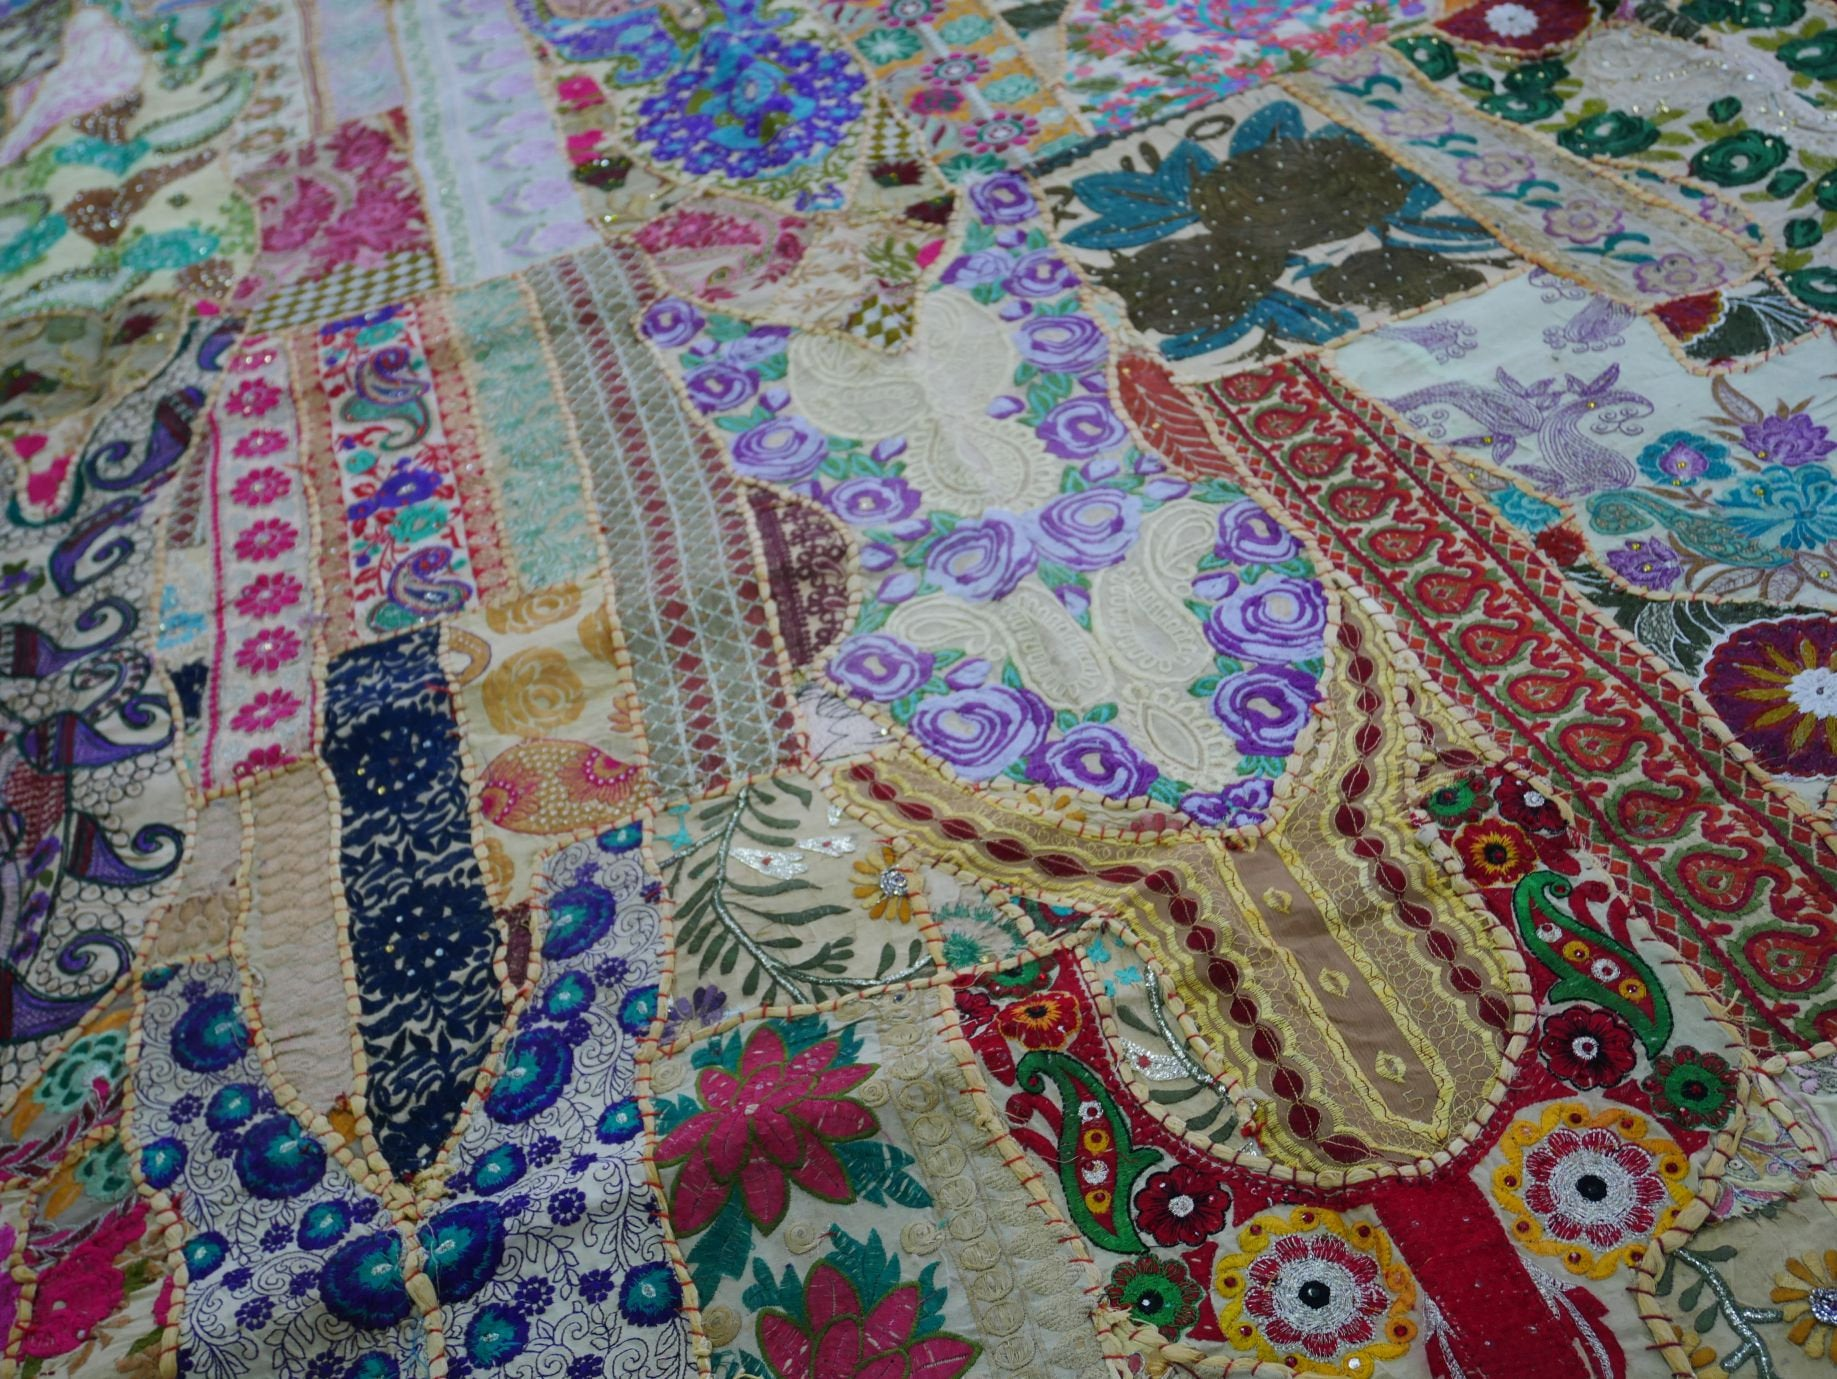 "Indian patchwork bedspread ""Shanti Masala"" for bohemian bedding boho rustic home decor"